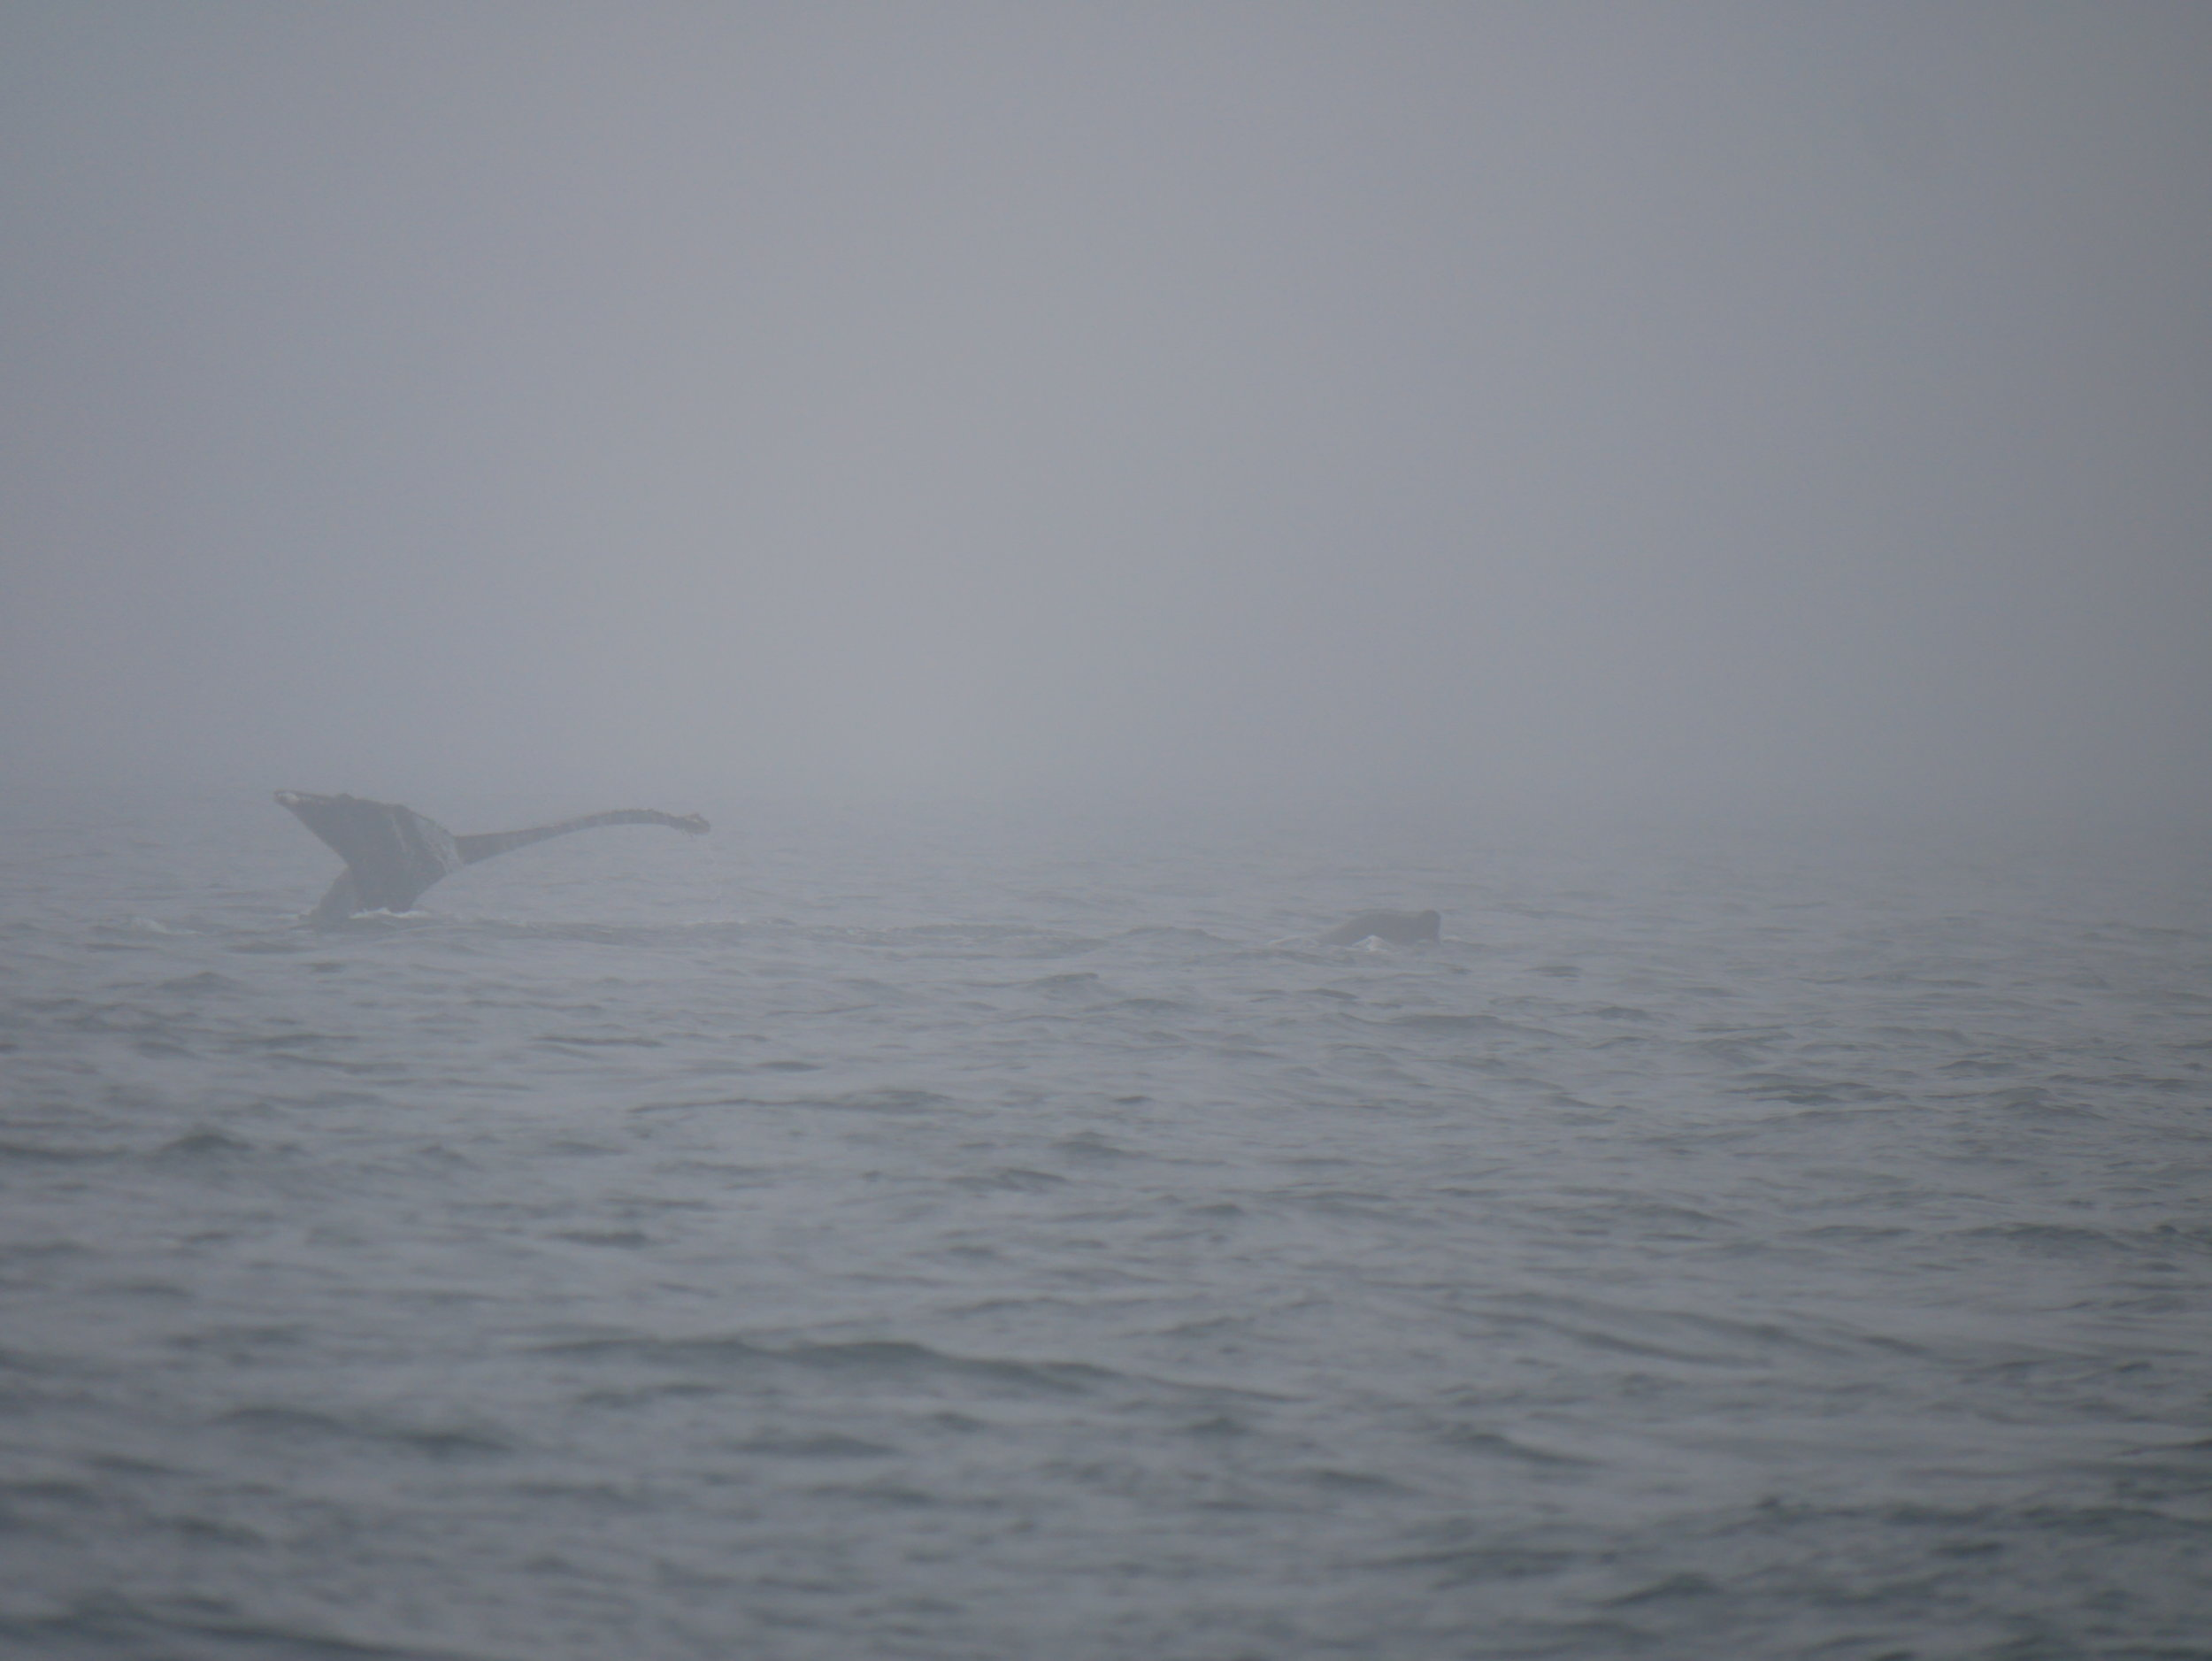 Fluke in the fog - and a hump!